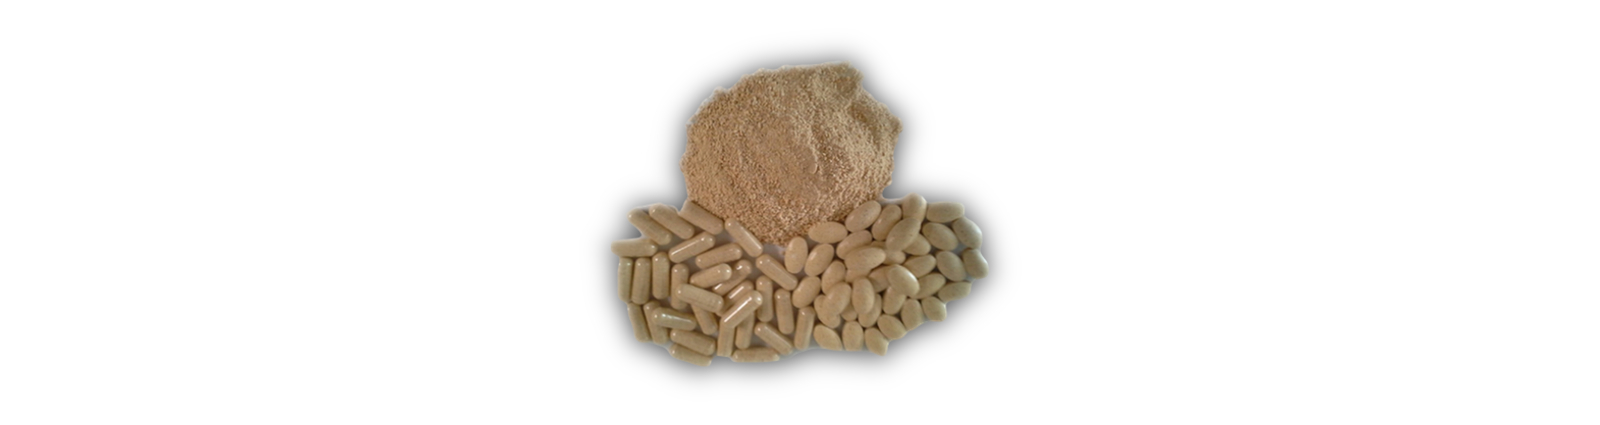 Kaiser-Farms-Wisconsin-Ginseng-Tablets-and-Powder